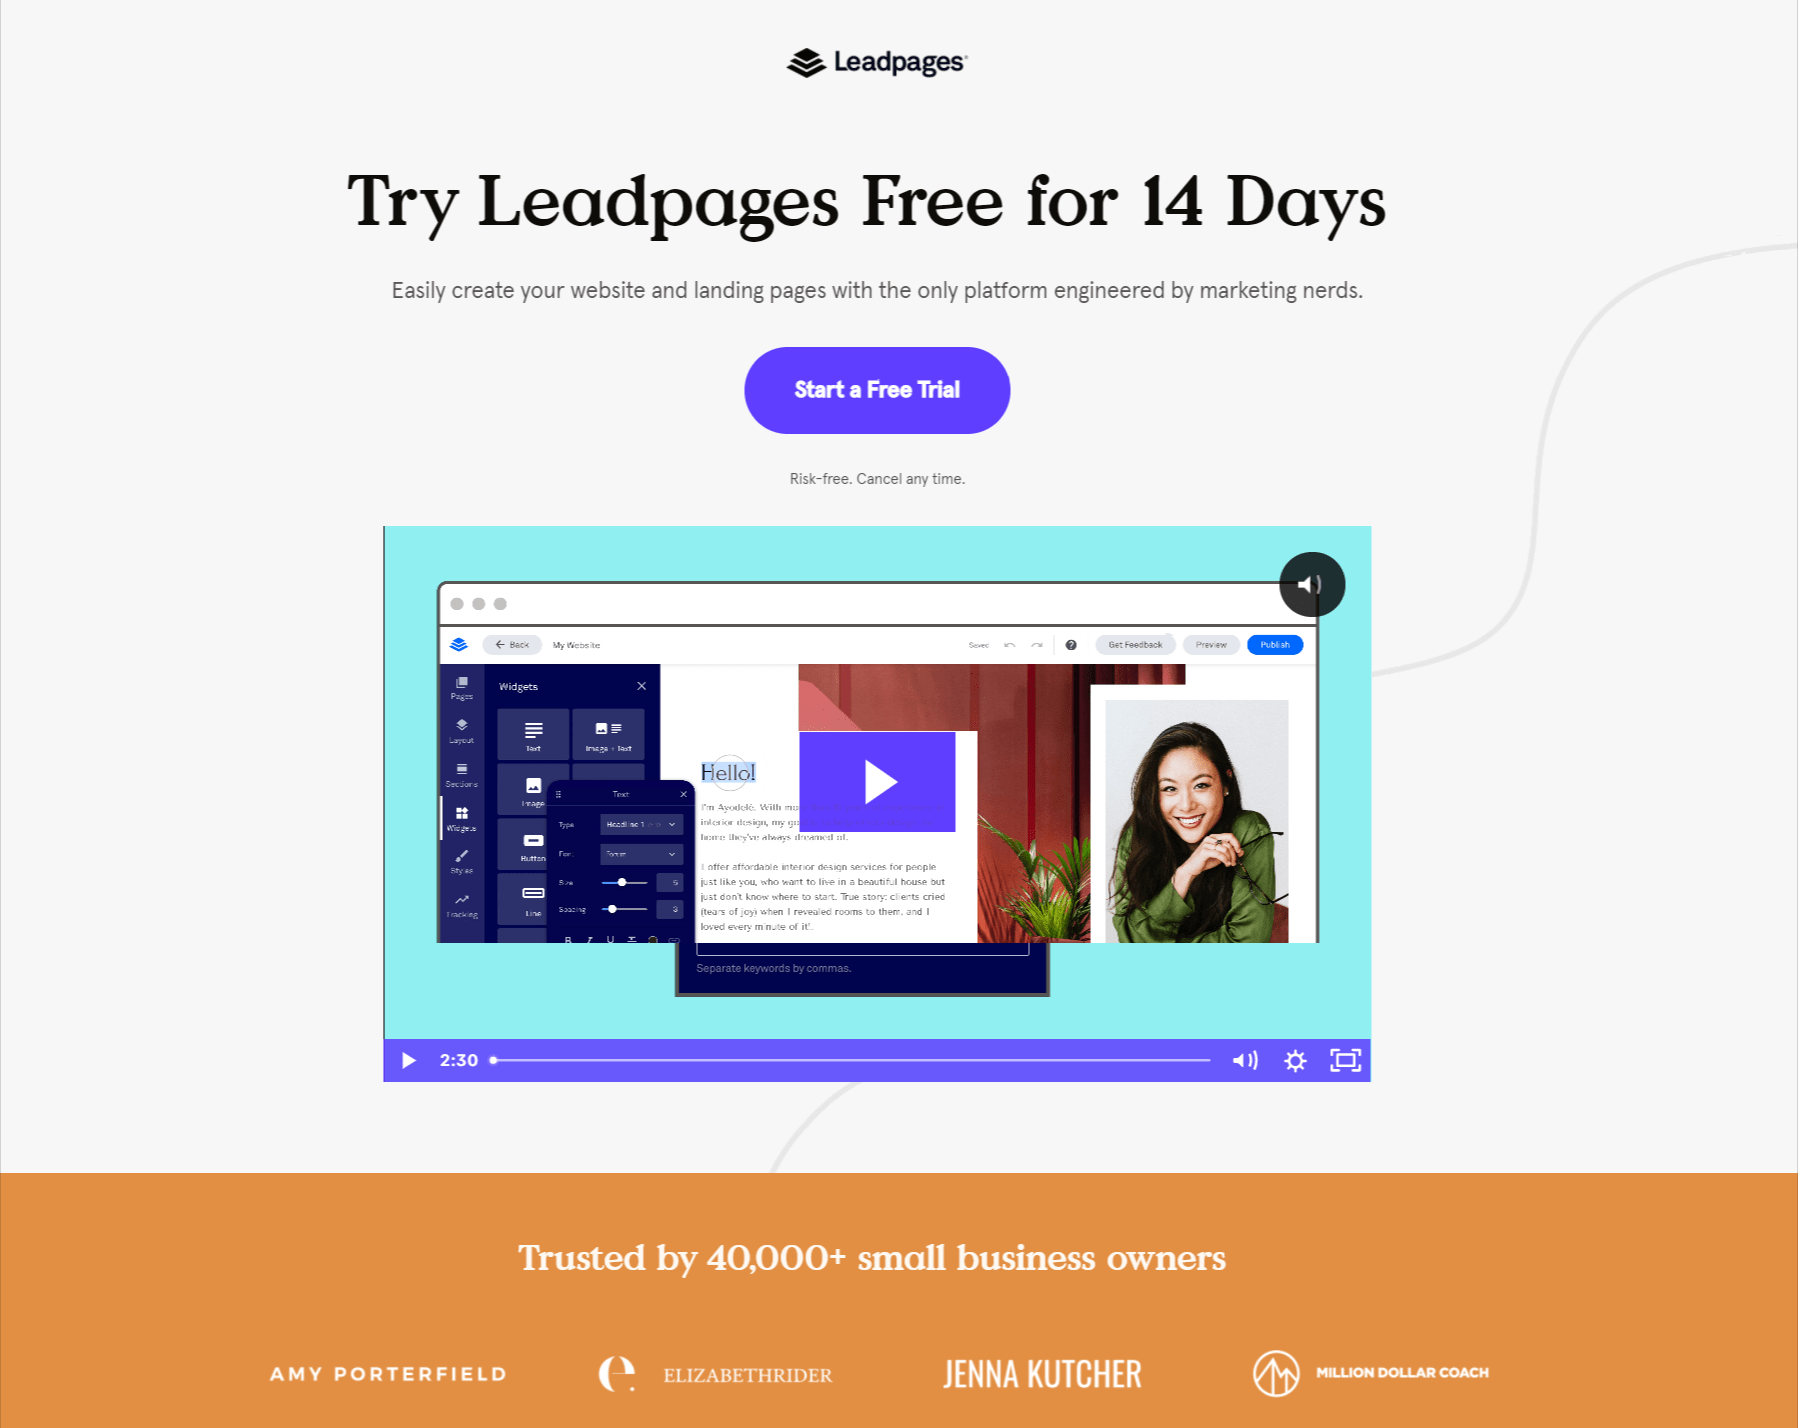 Leadpages Overview